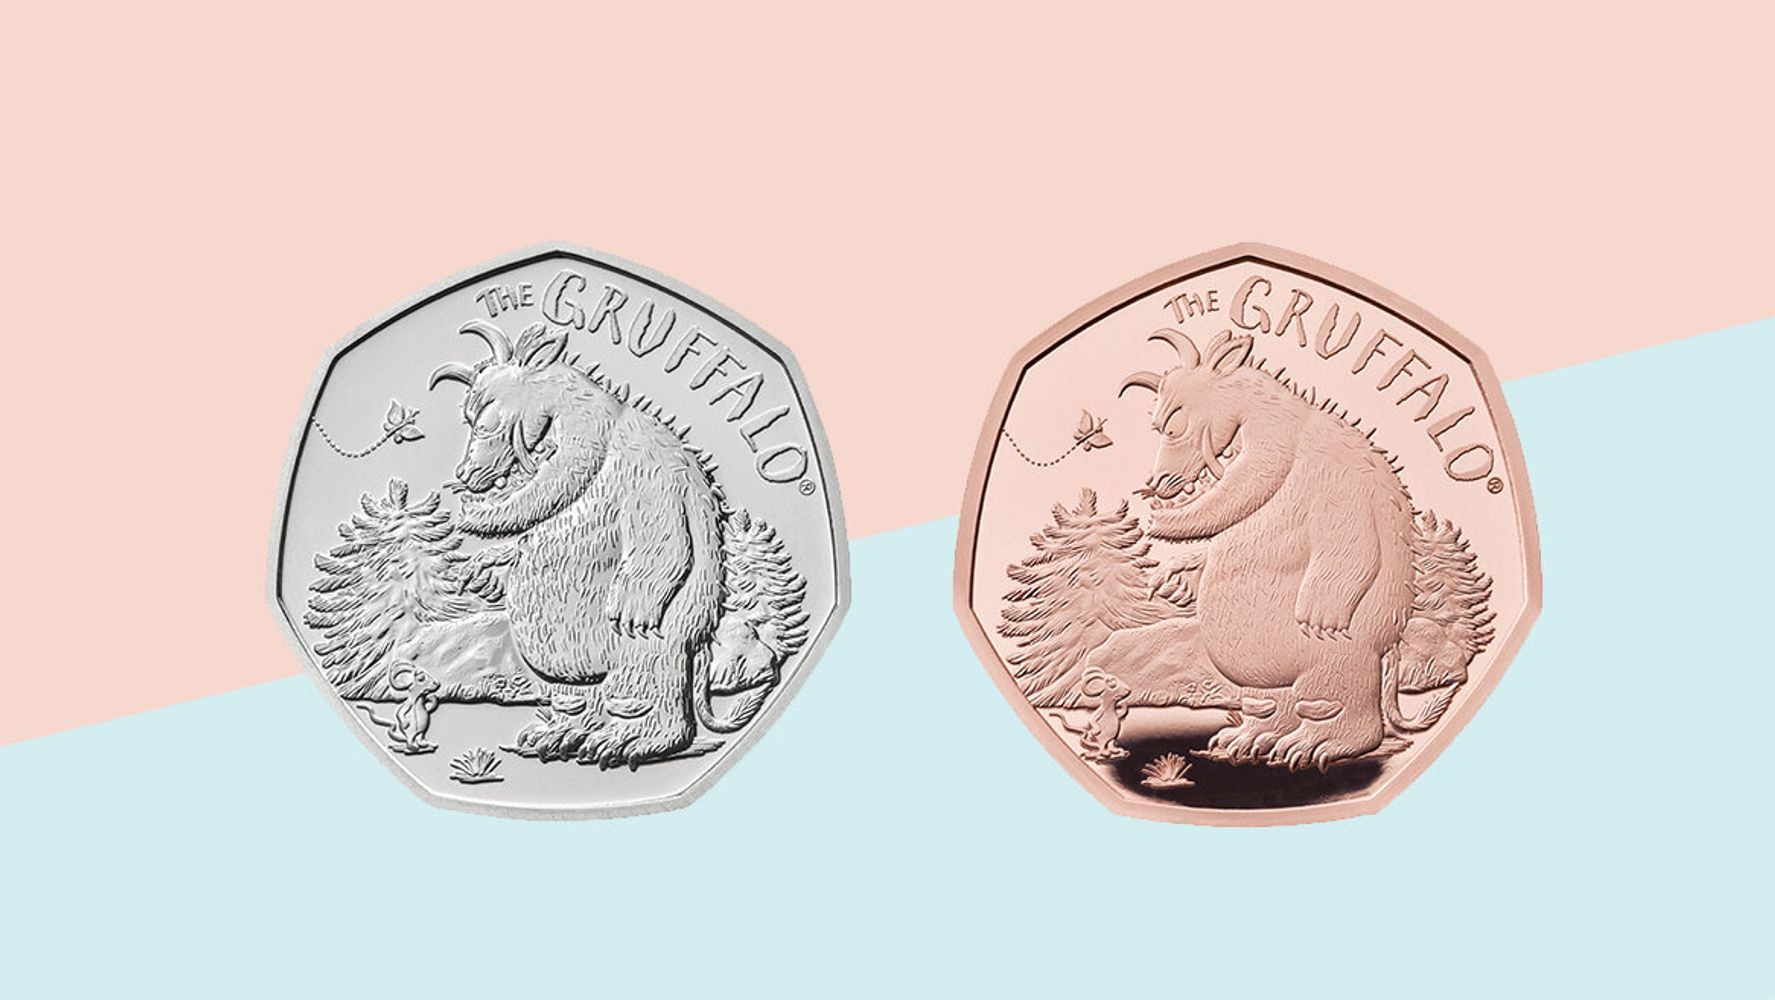 Gruffalo And Mouse 50p Coin Goes On Sale – Buy It Here